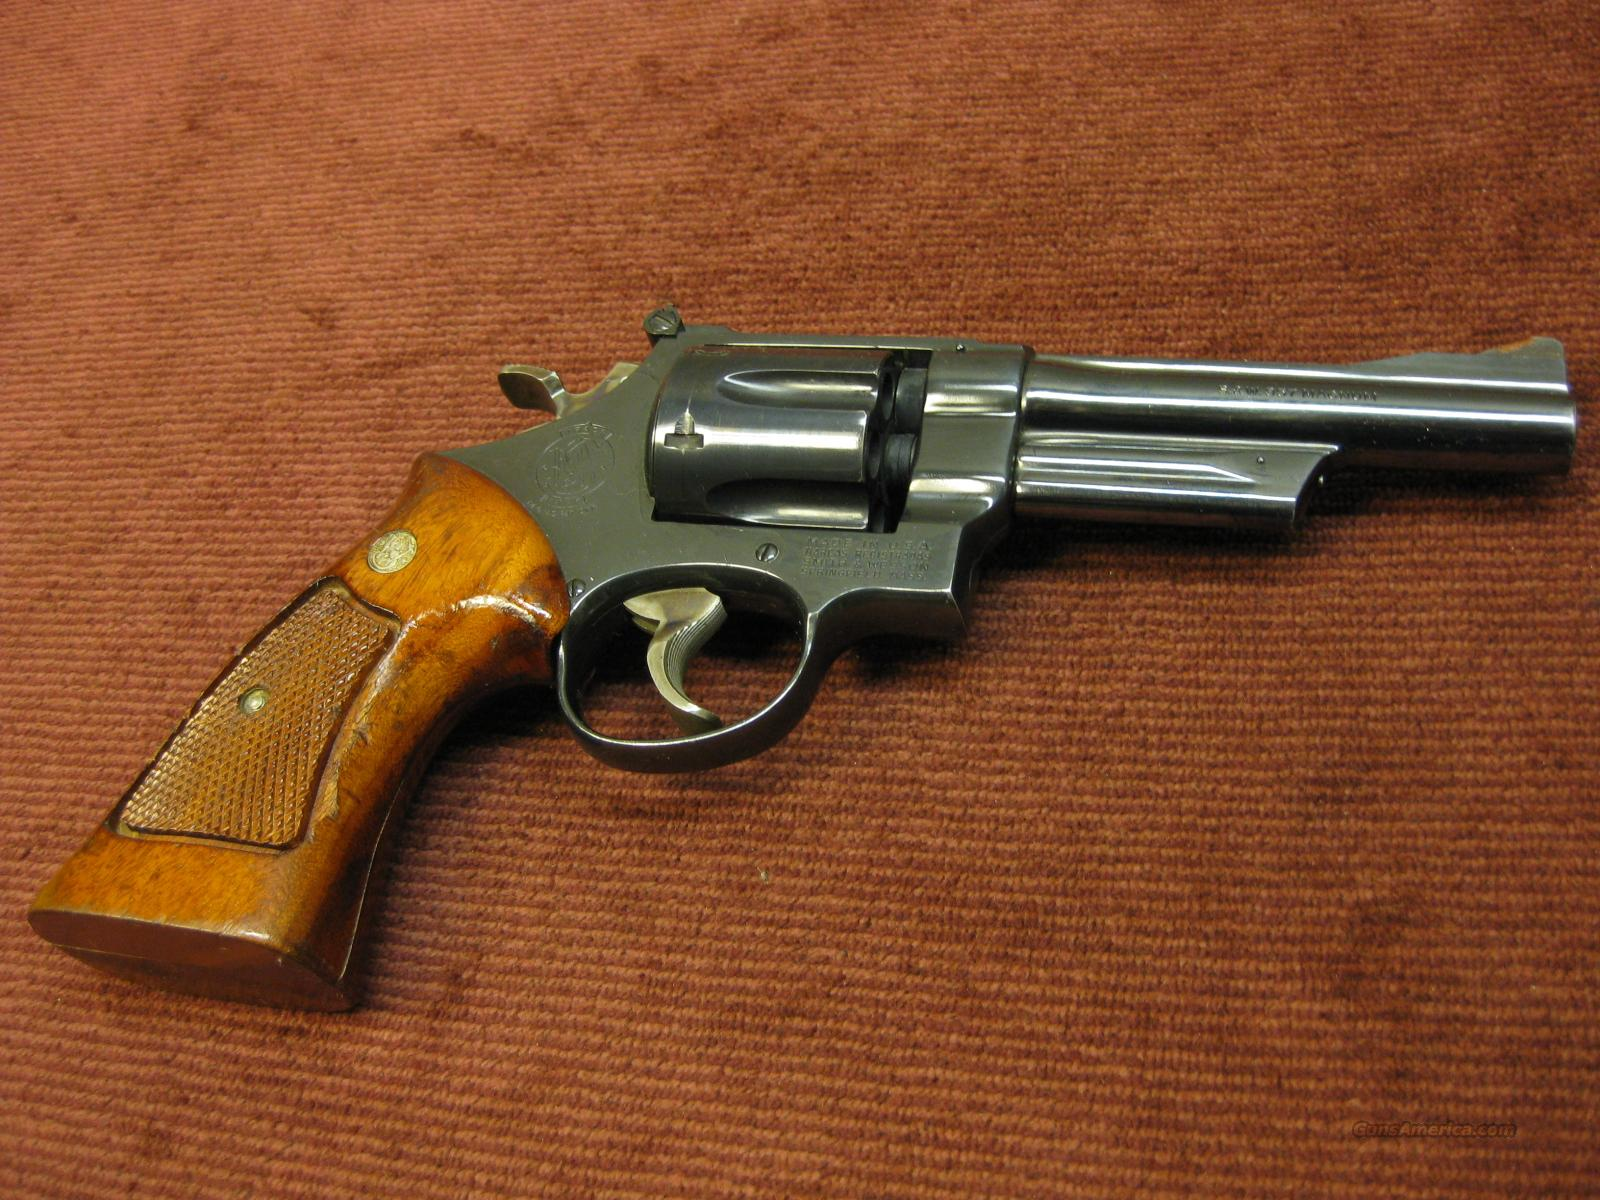 SMITH & WESSON 27-2 .357MAG., 5-INCH BLUE - EXCELLENT !  Guns > Pistols > Smith & Wesson Revolvers > Full Frame Revolver